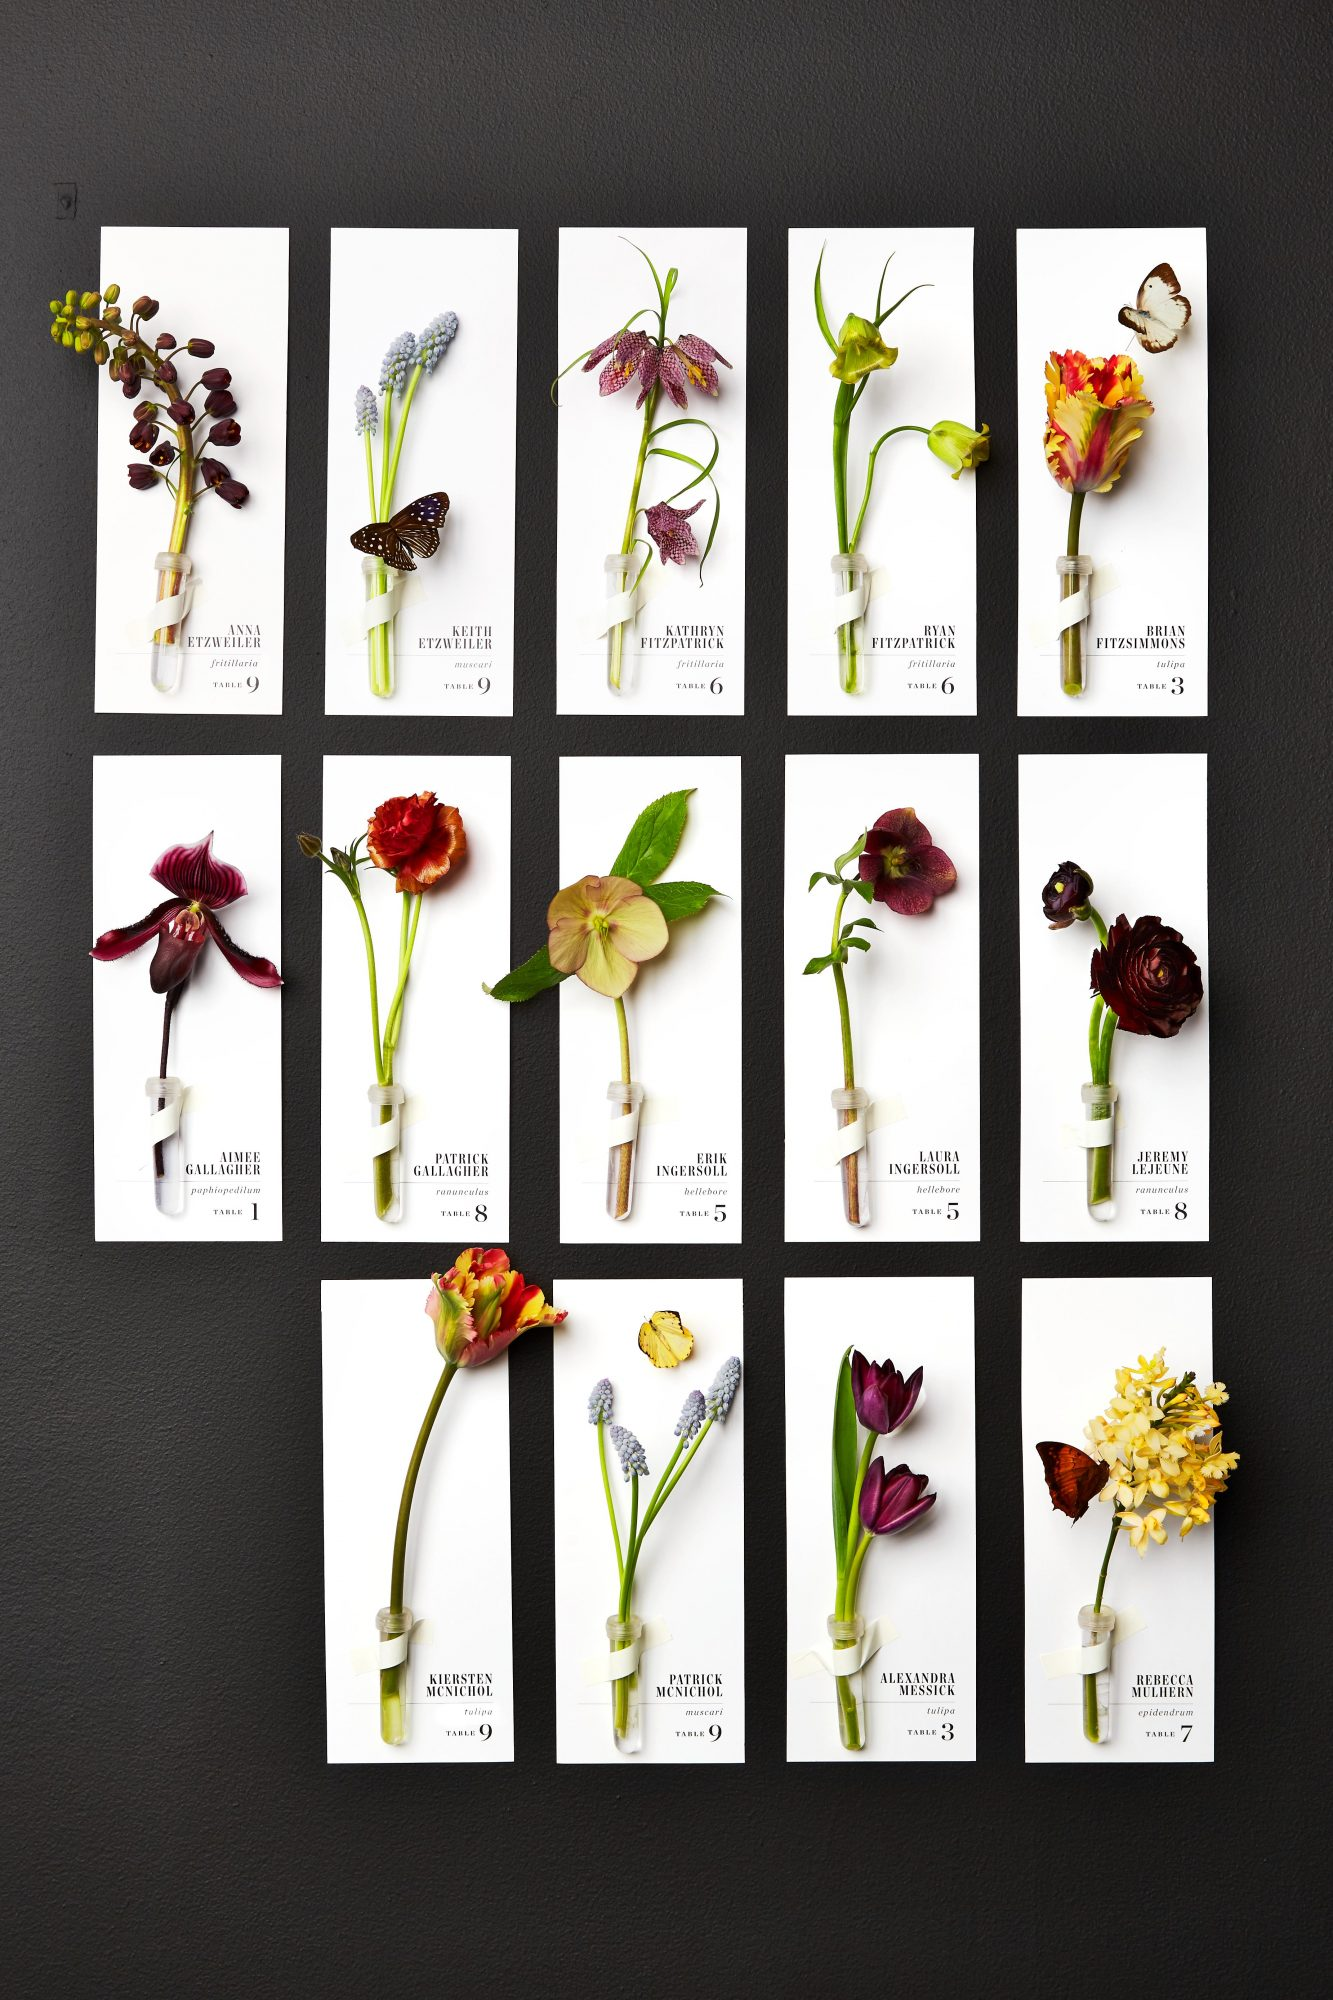 Flower escort cards for guests